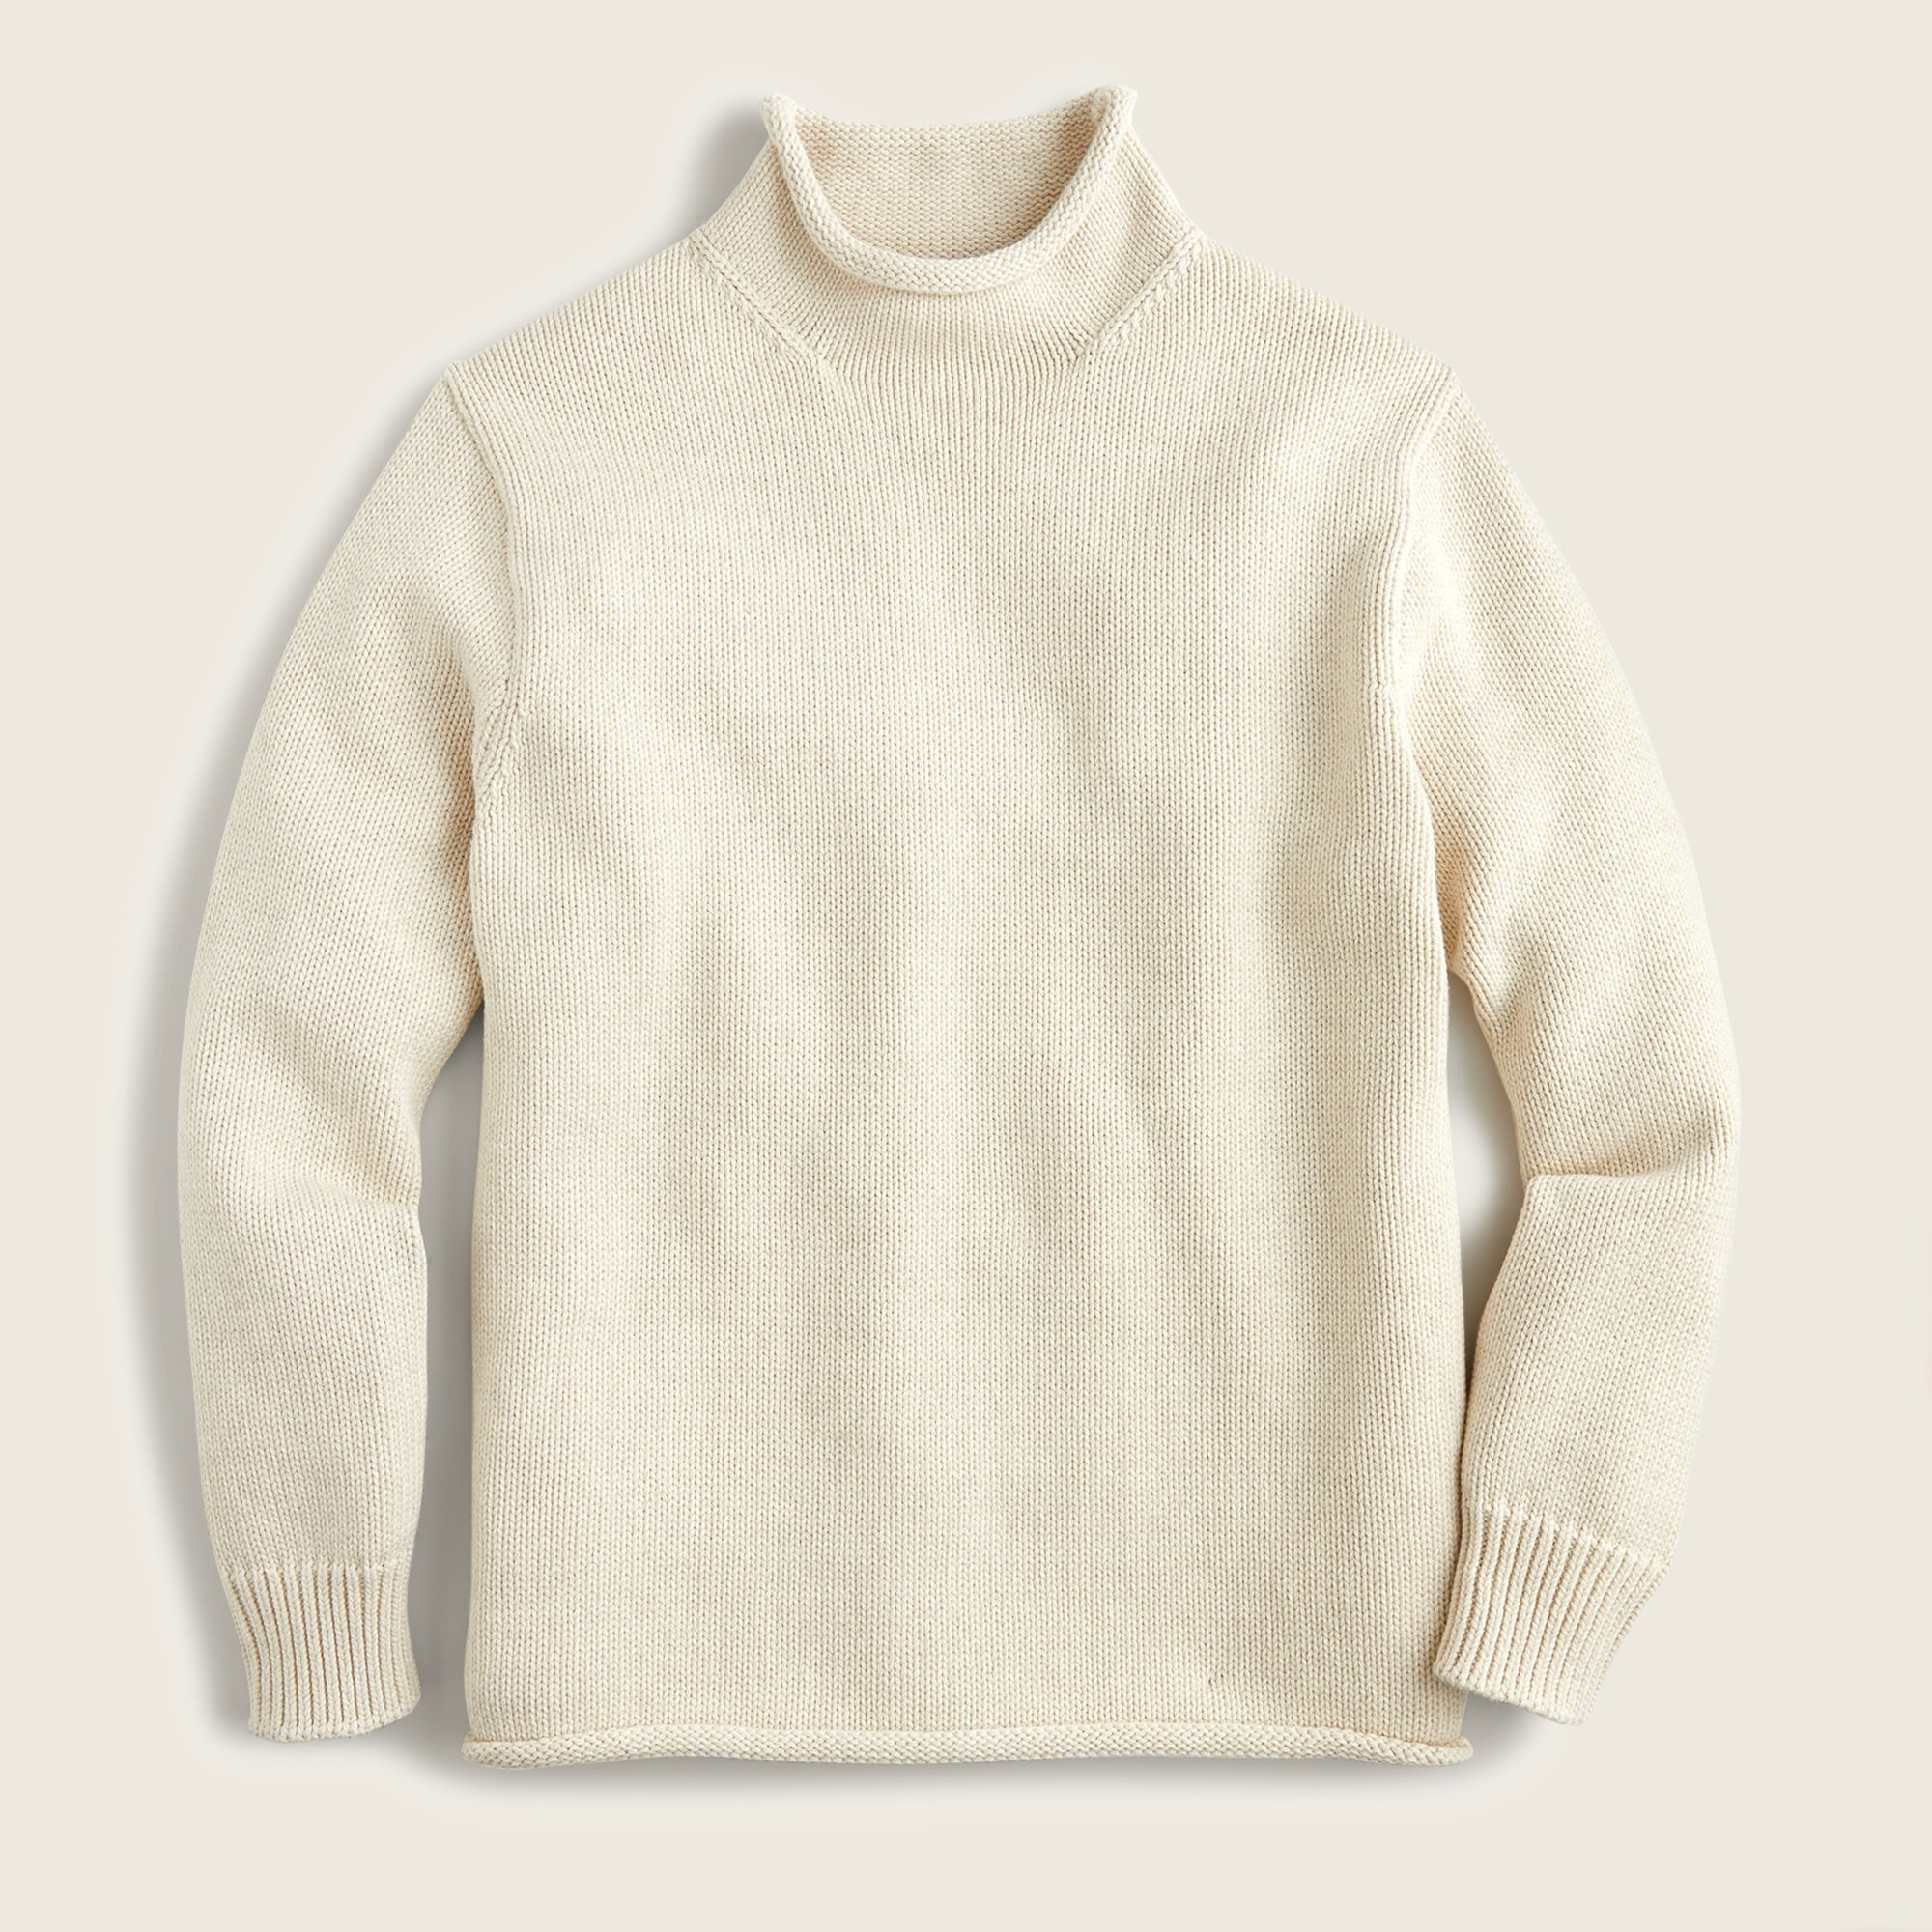 Image 1 for Unisex 1988 cotton rollneck™ sweater